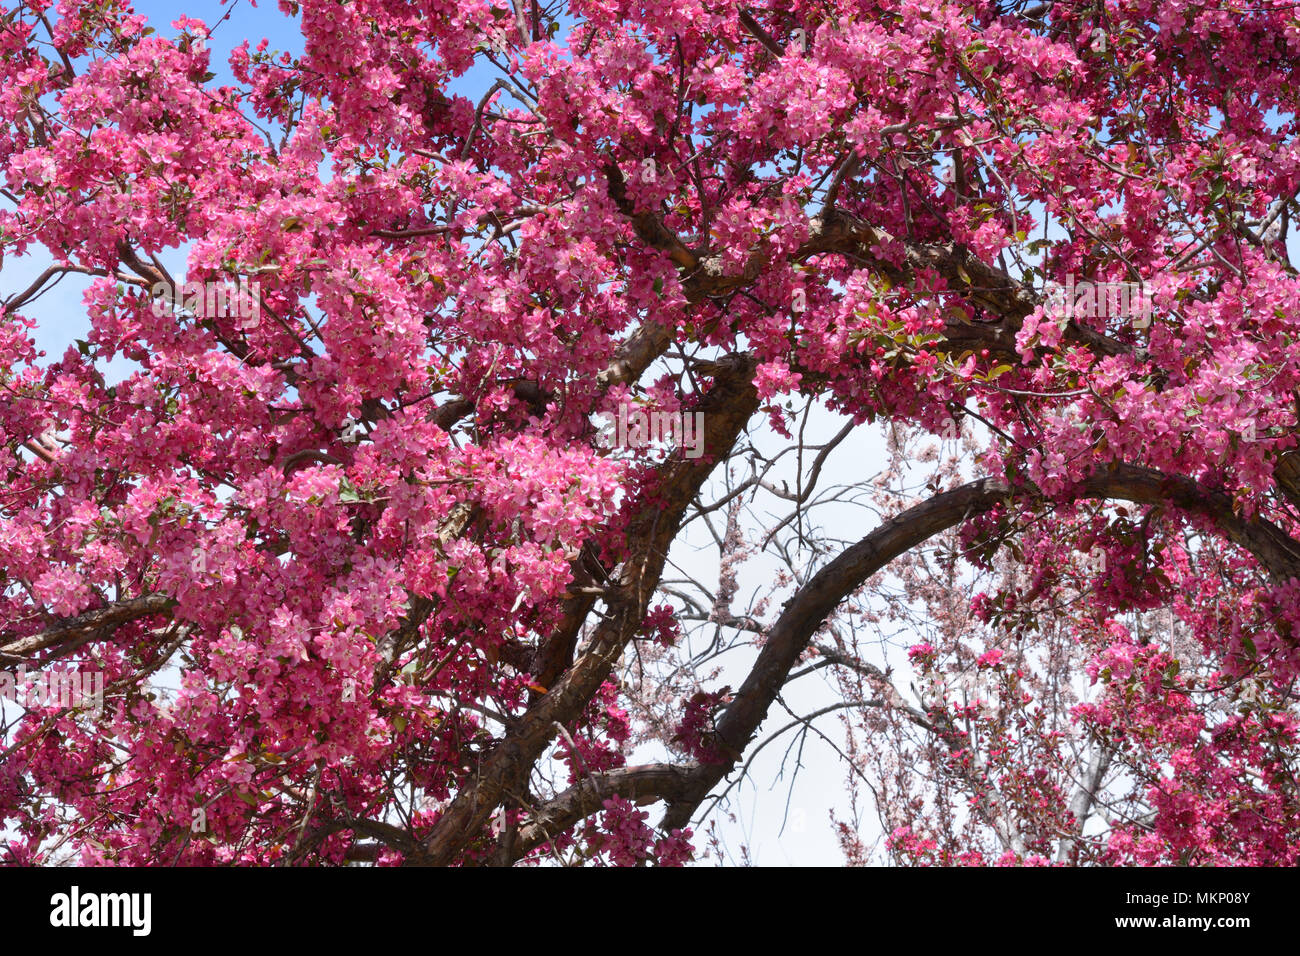 Pink Crab Apple Flowers Blossoming On Tree Branches In Springtime